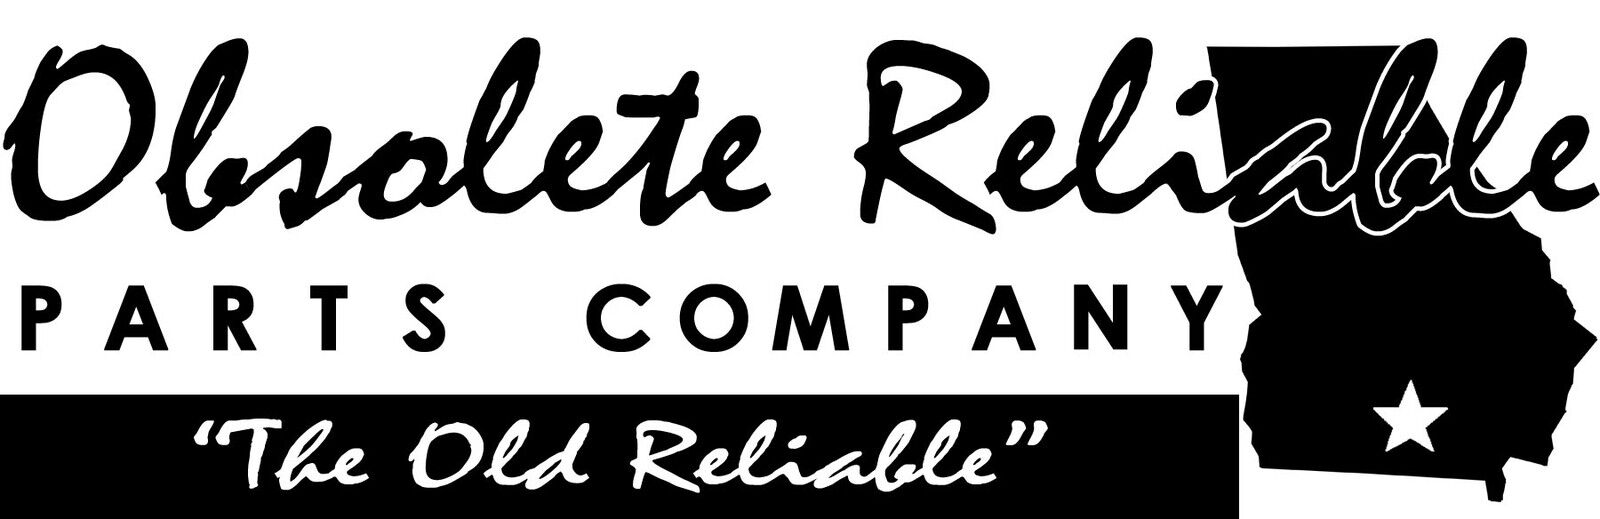 Obsolete Reliable Parts Company